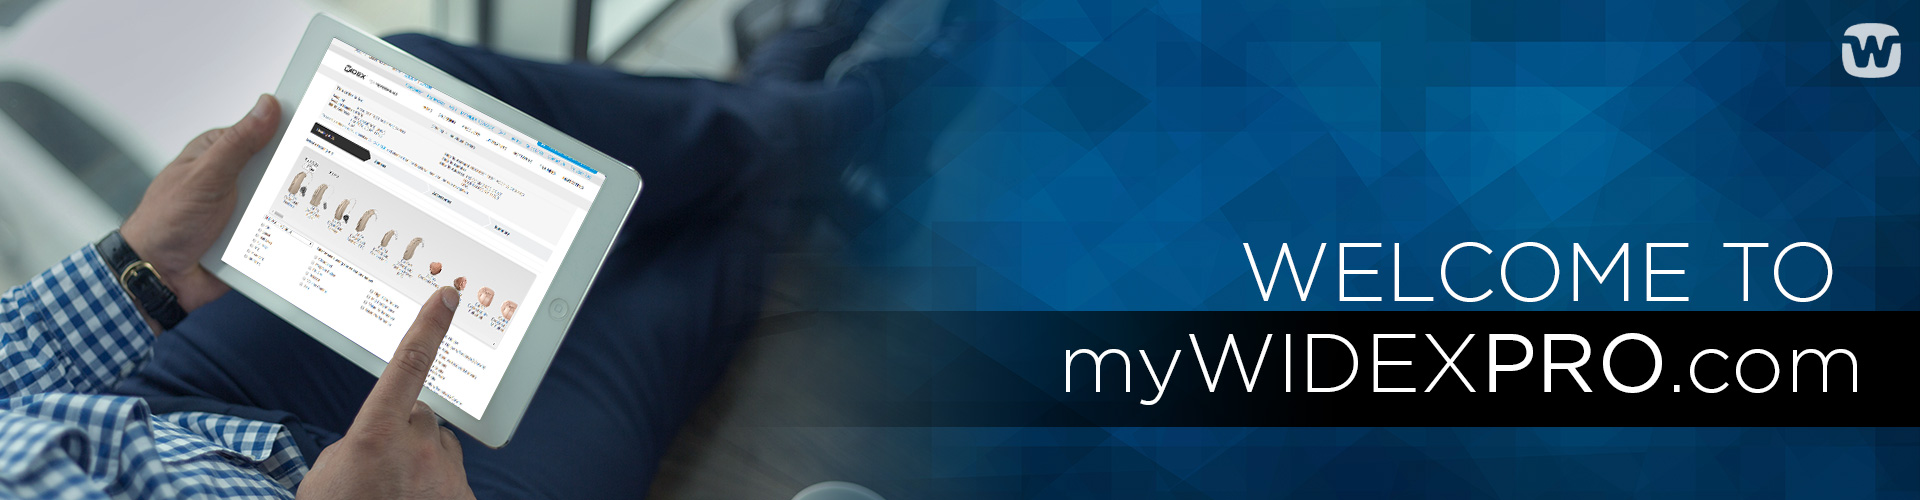 myWidexPRO.com